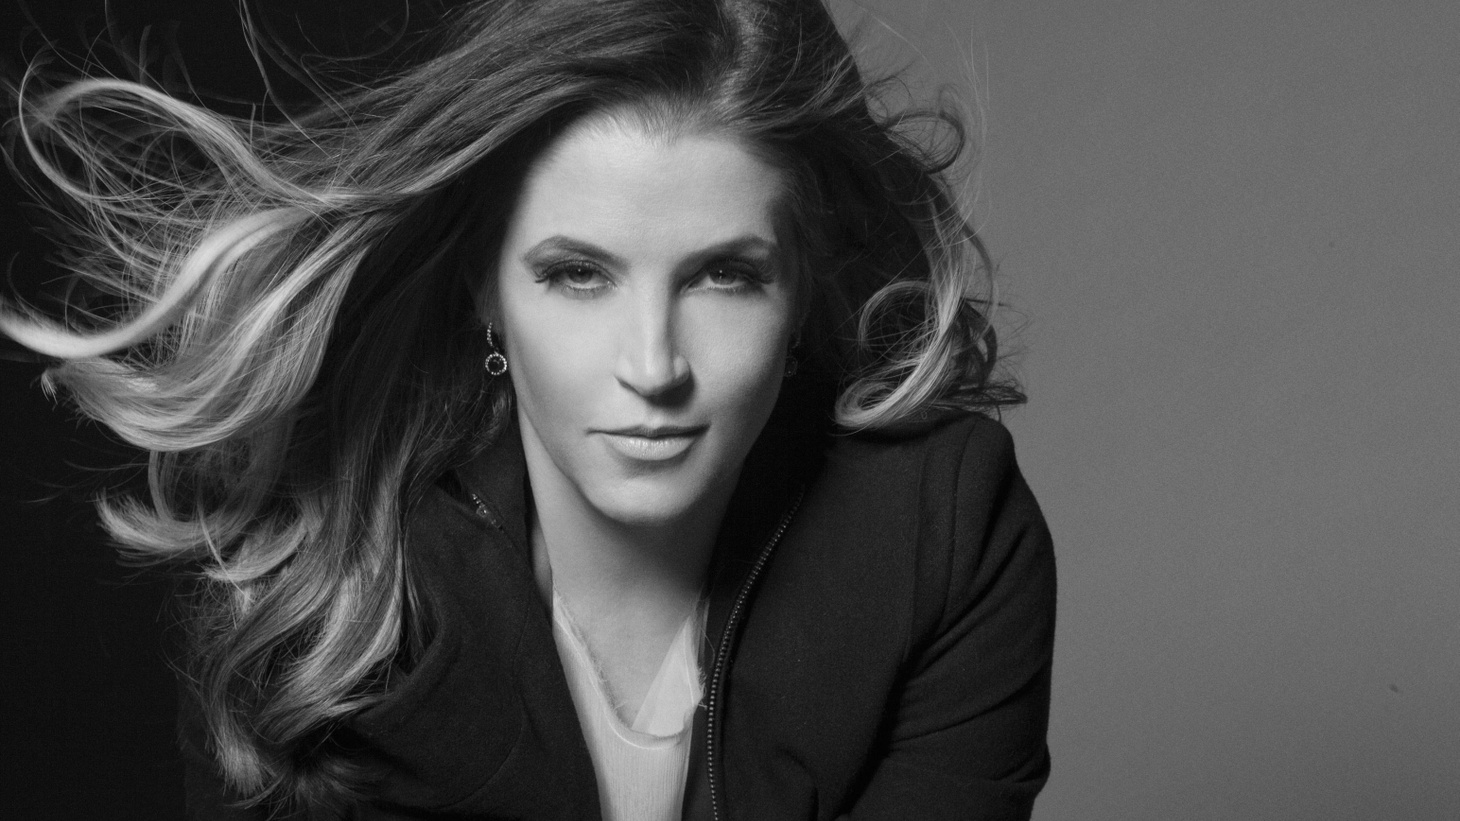 Lisa Marie Presley is no stranger to music. The Southern belle returns to her roots with a new stripped down CD, produced by 12-time Grammy Award winner T Bone Burnett.